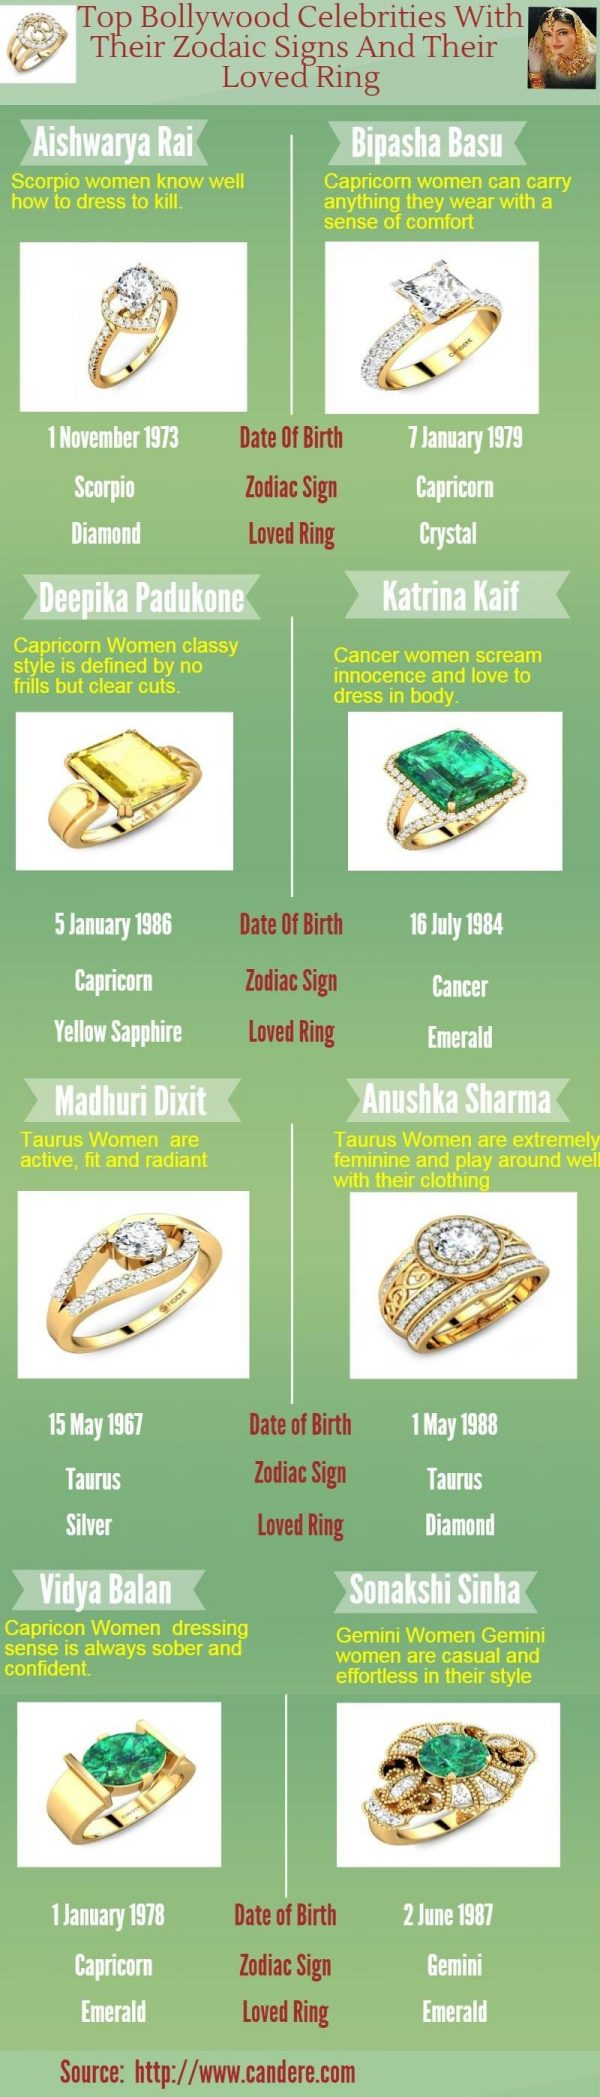 Top Bollywood celebrities with their Zodaic signs and their loved ring [Infographic]